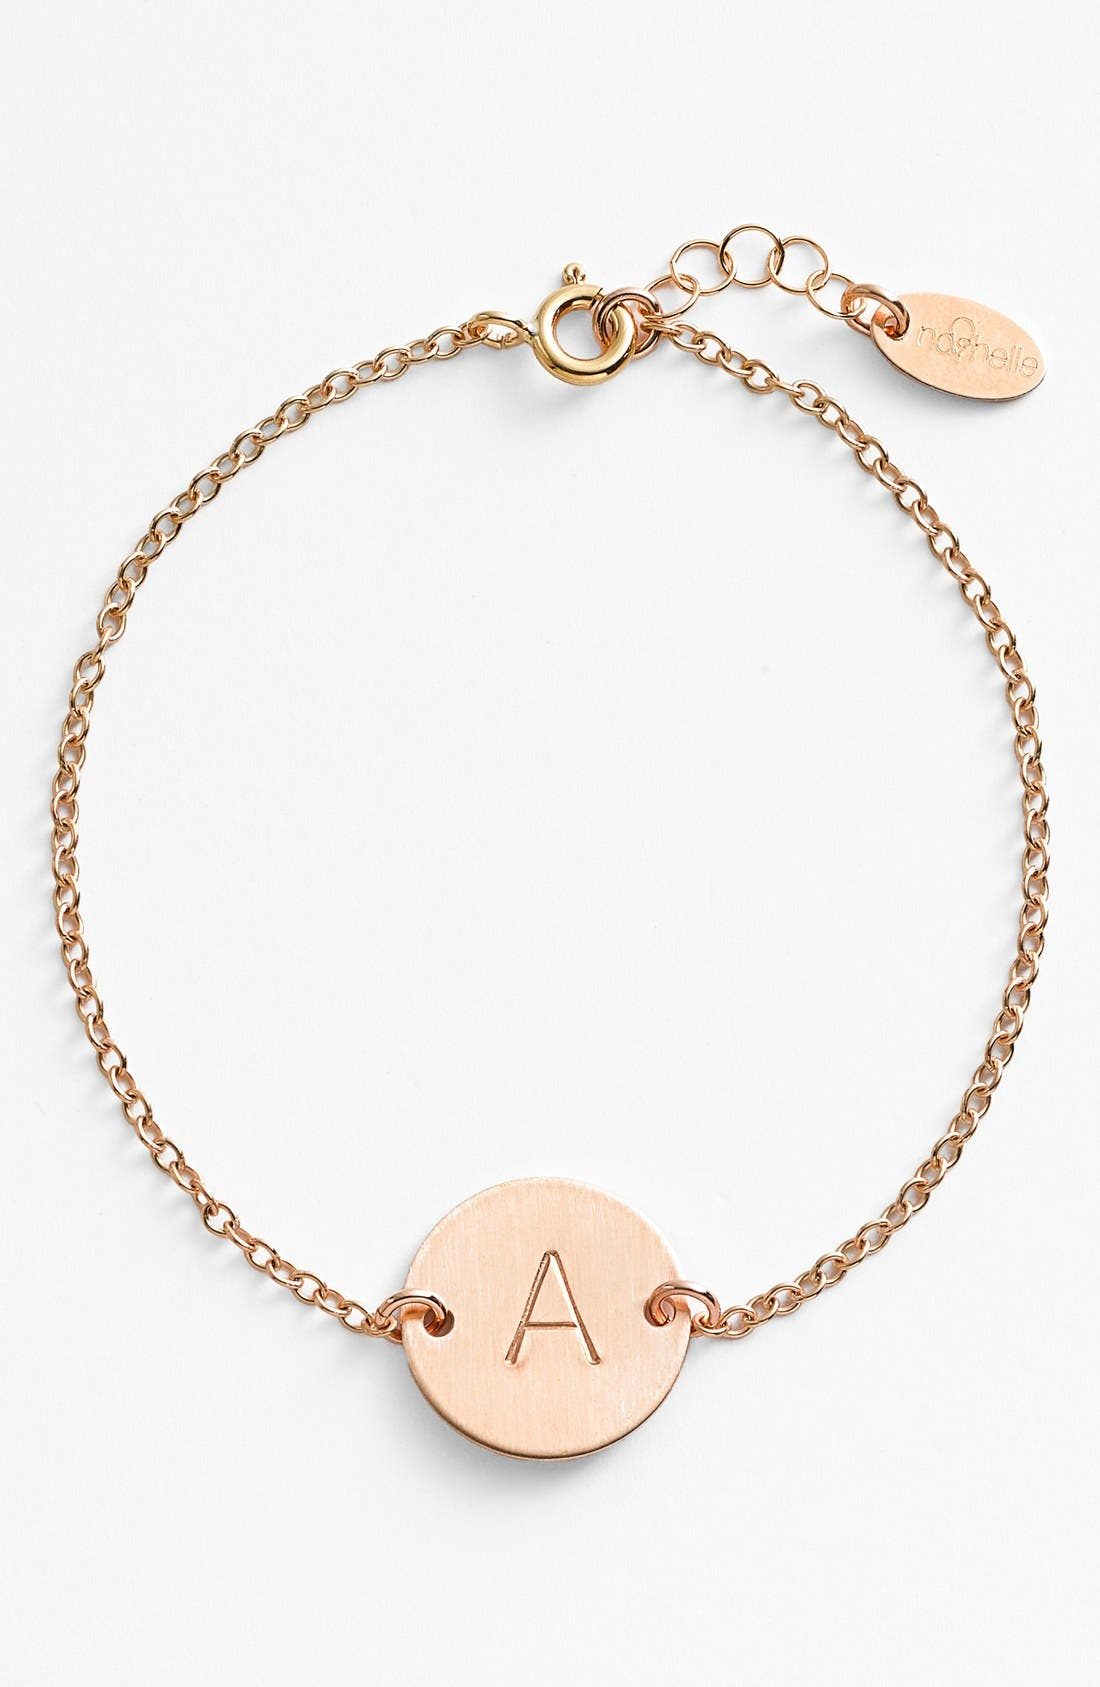 NASHELLE 14k-Gold Fill Initial Disc Bracelet, Main, color, 14K GOLD FILL A